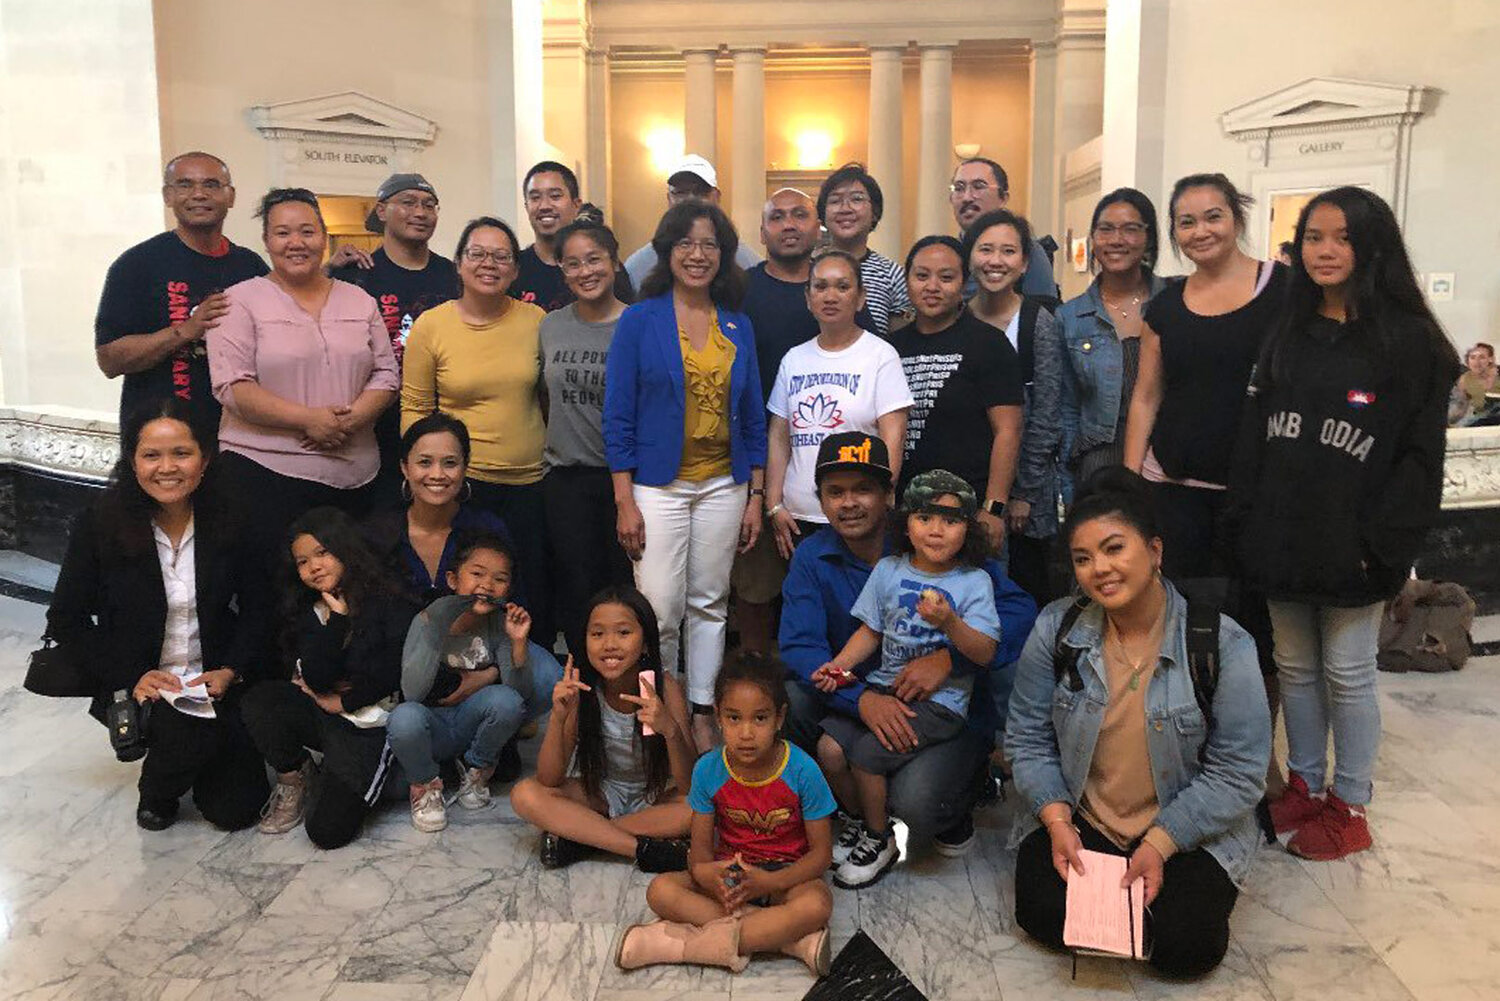 Organizers and advocates gather at Oakland City Hall and successfully pass resolution to condemn detention and deportation of Bay Area Cambodians.